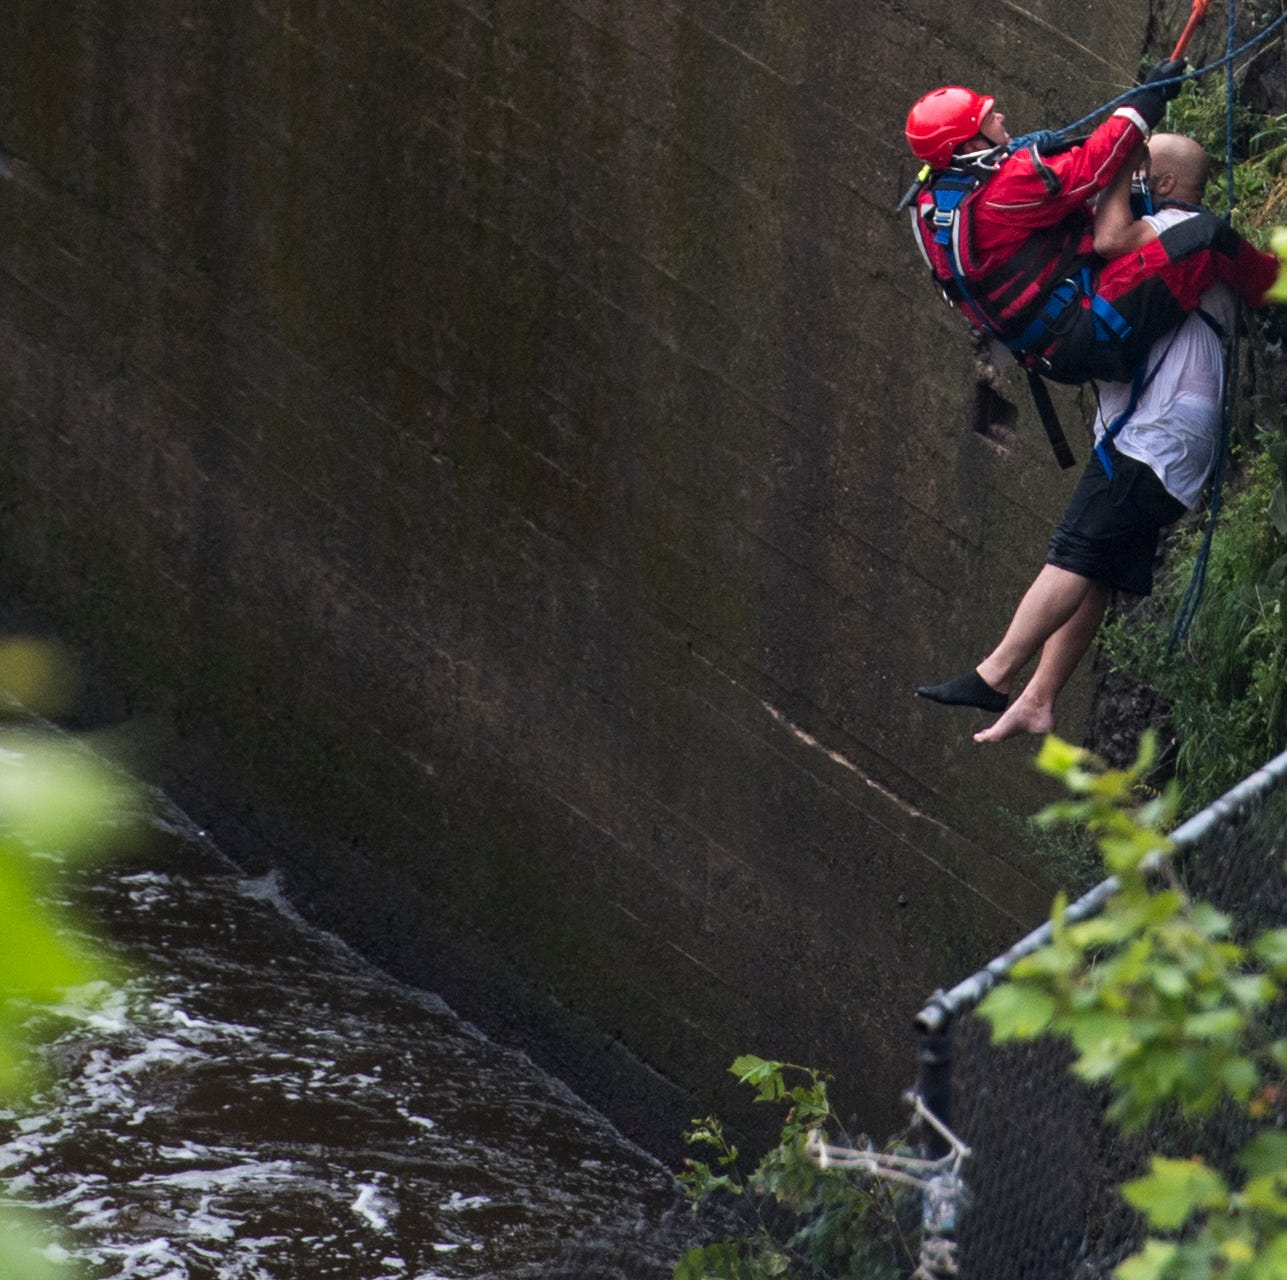 Man who fell trying to retrieve cell phone rescued from base of Paterson Great Falls